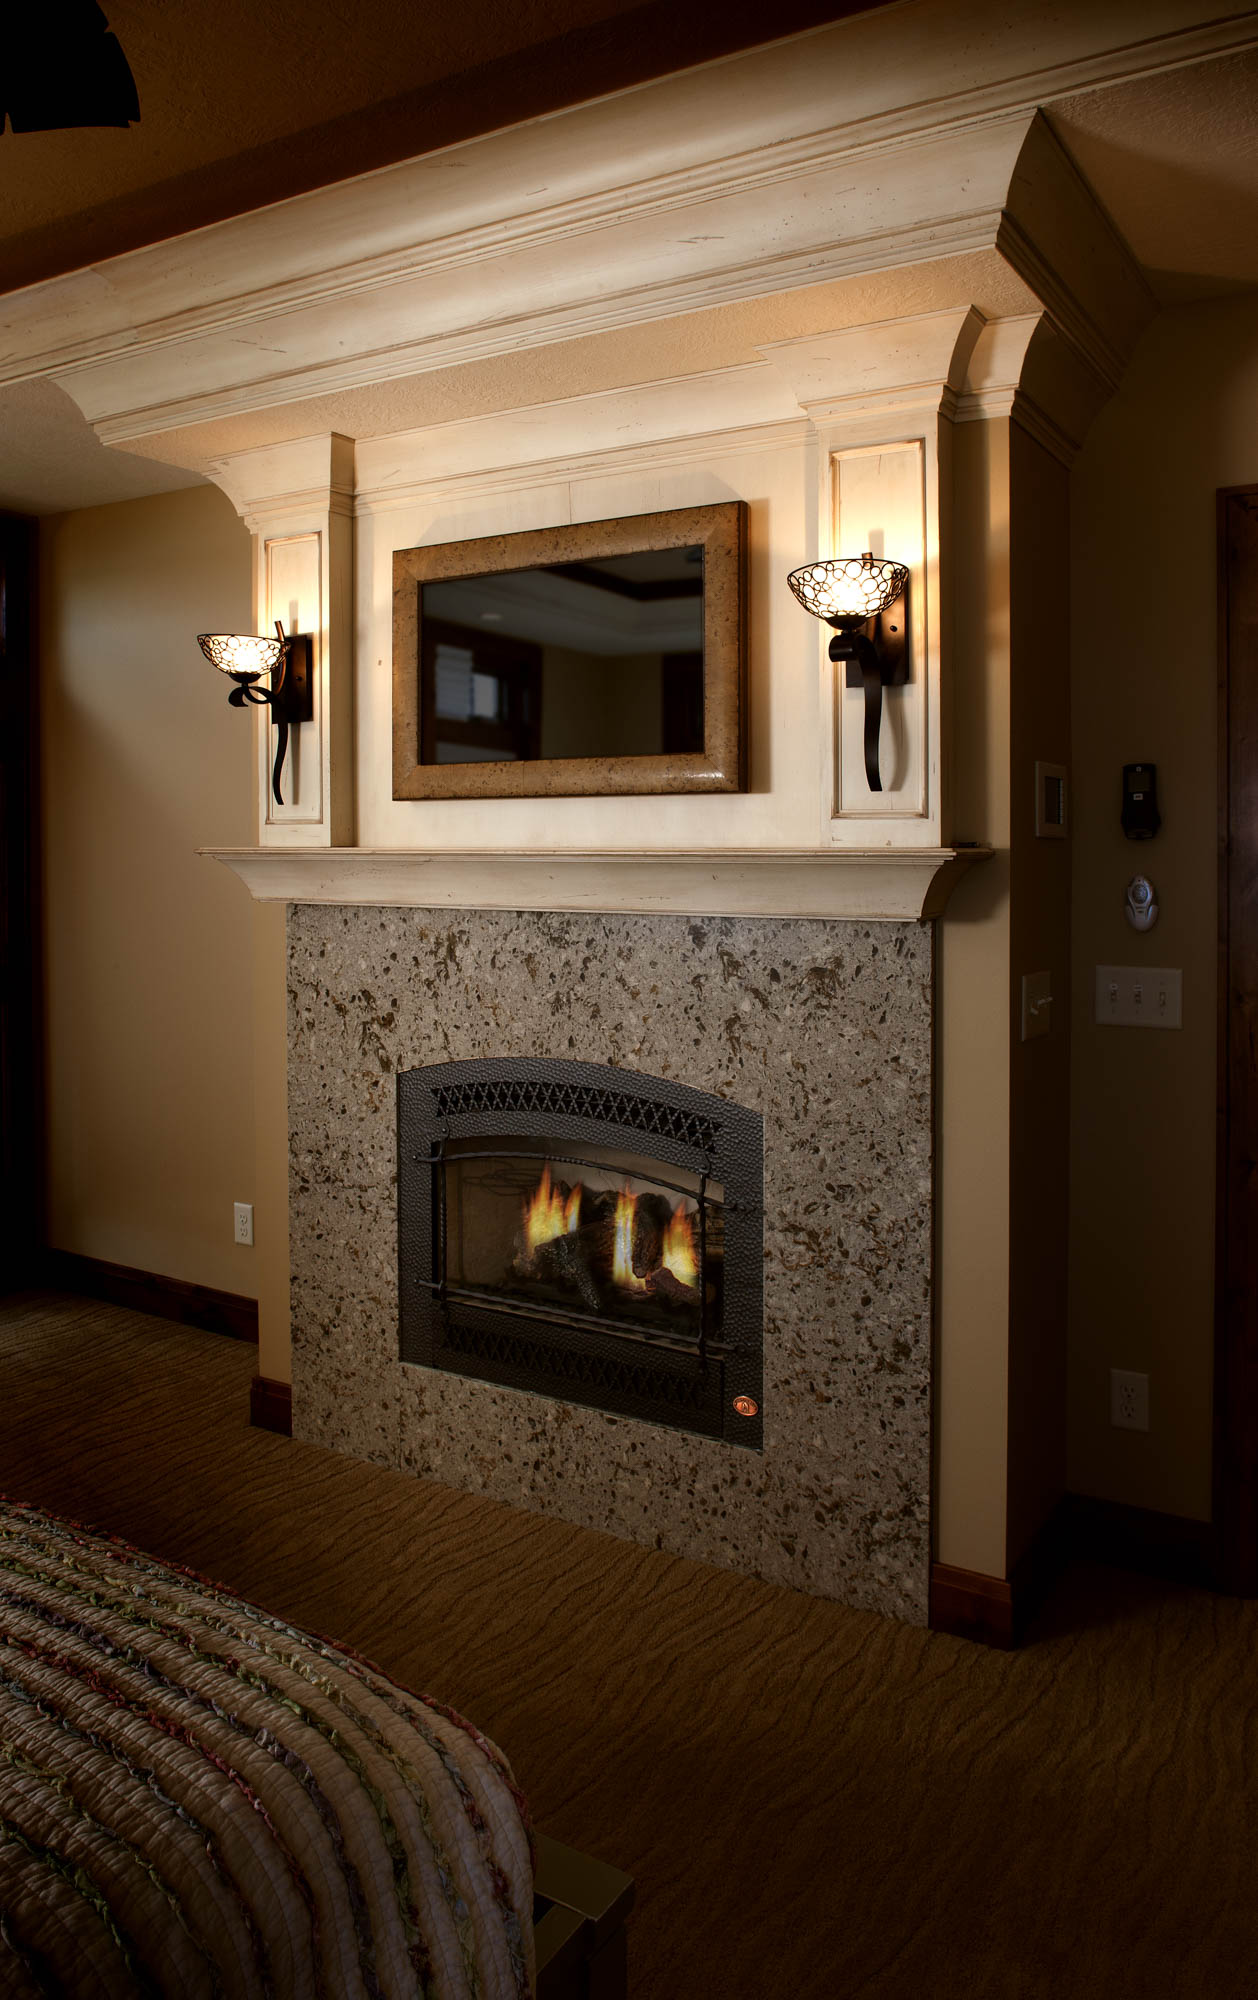 Painted master bedroom fireplace surround in Vintage Soft Cream by Showplace Cabinetry